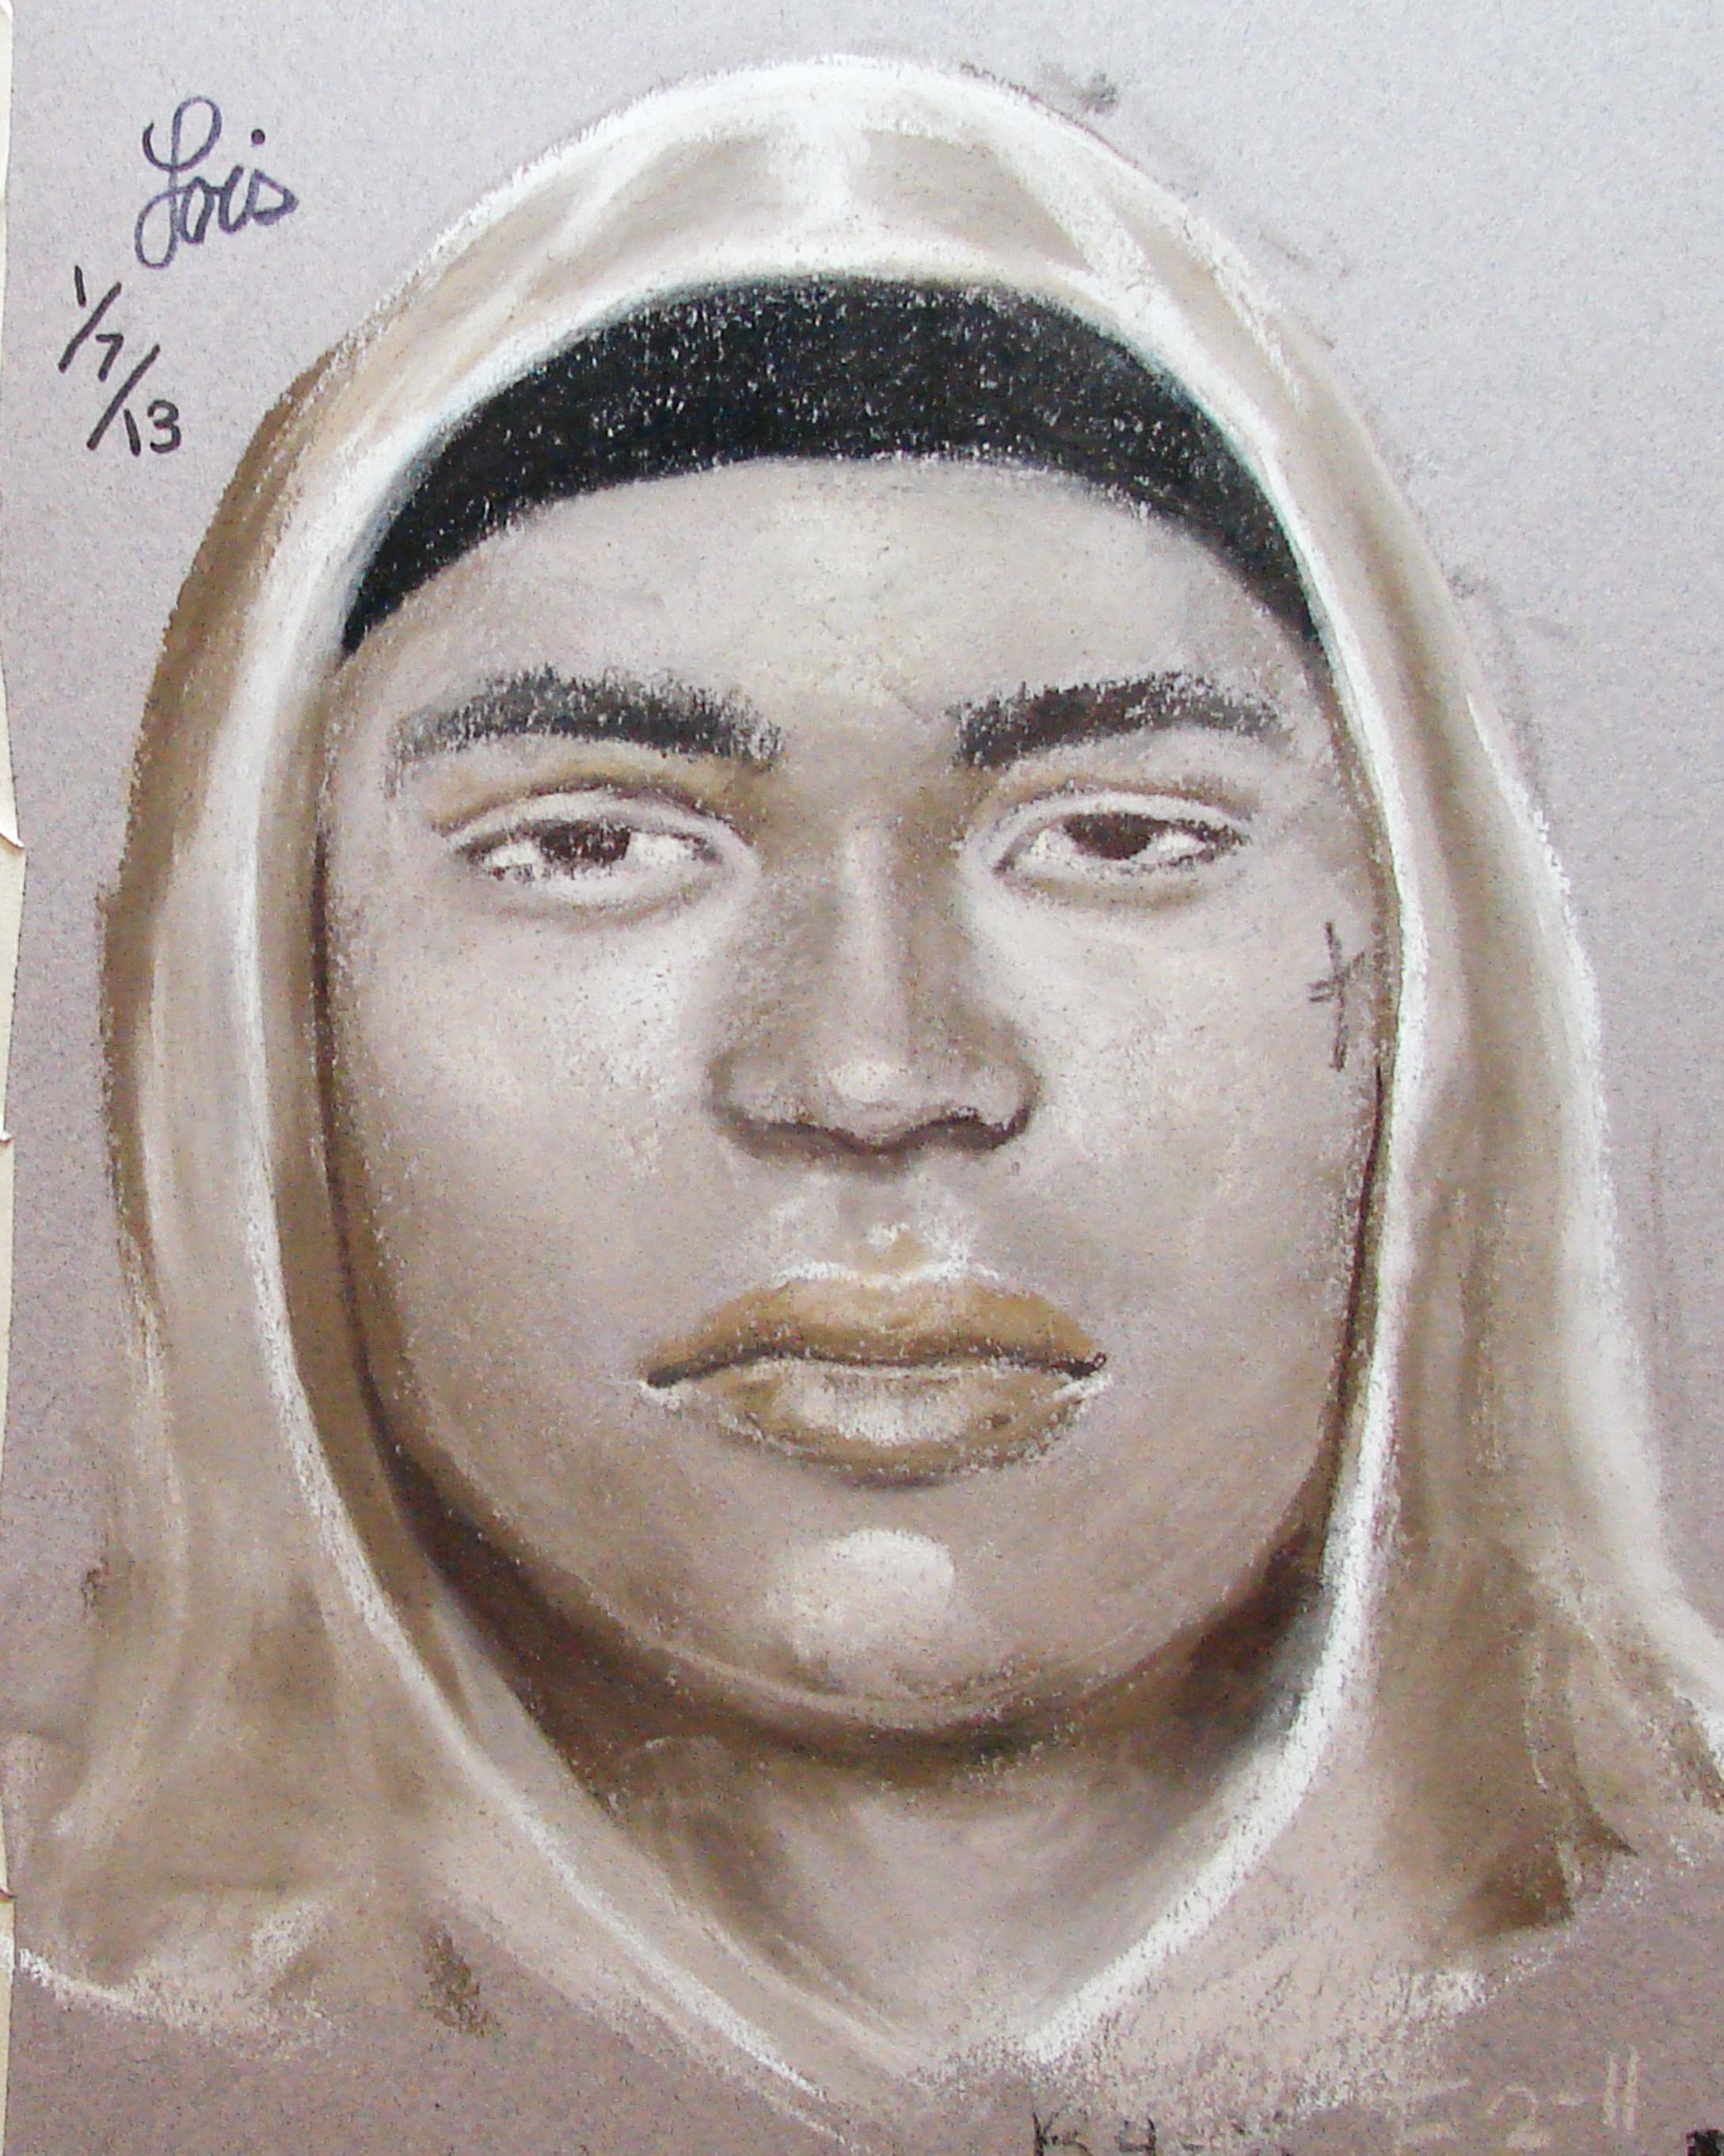 Suspect Sketch - January 3, 2013